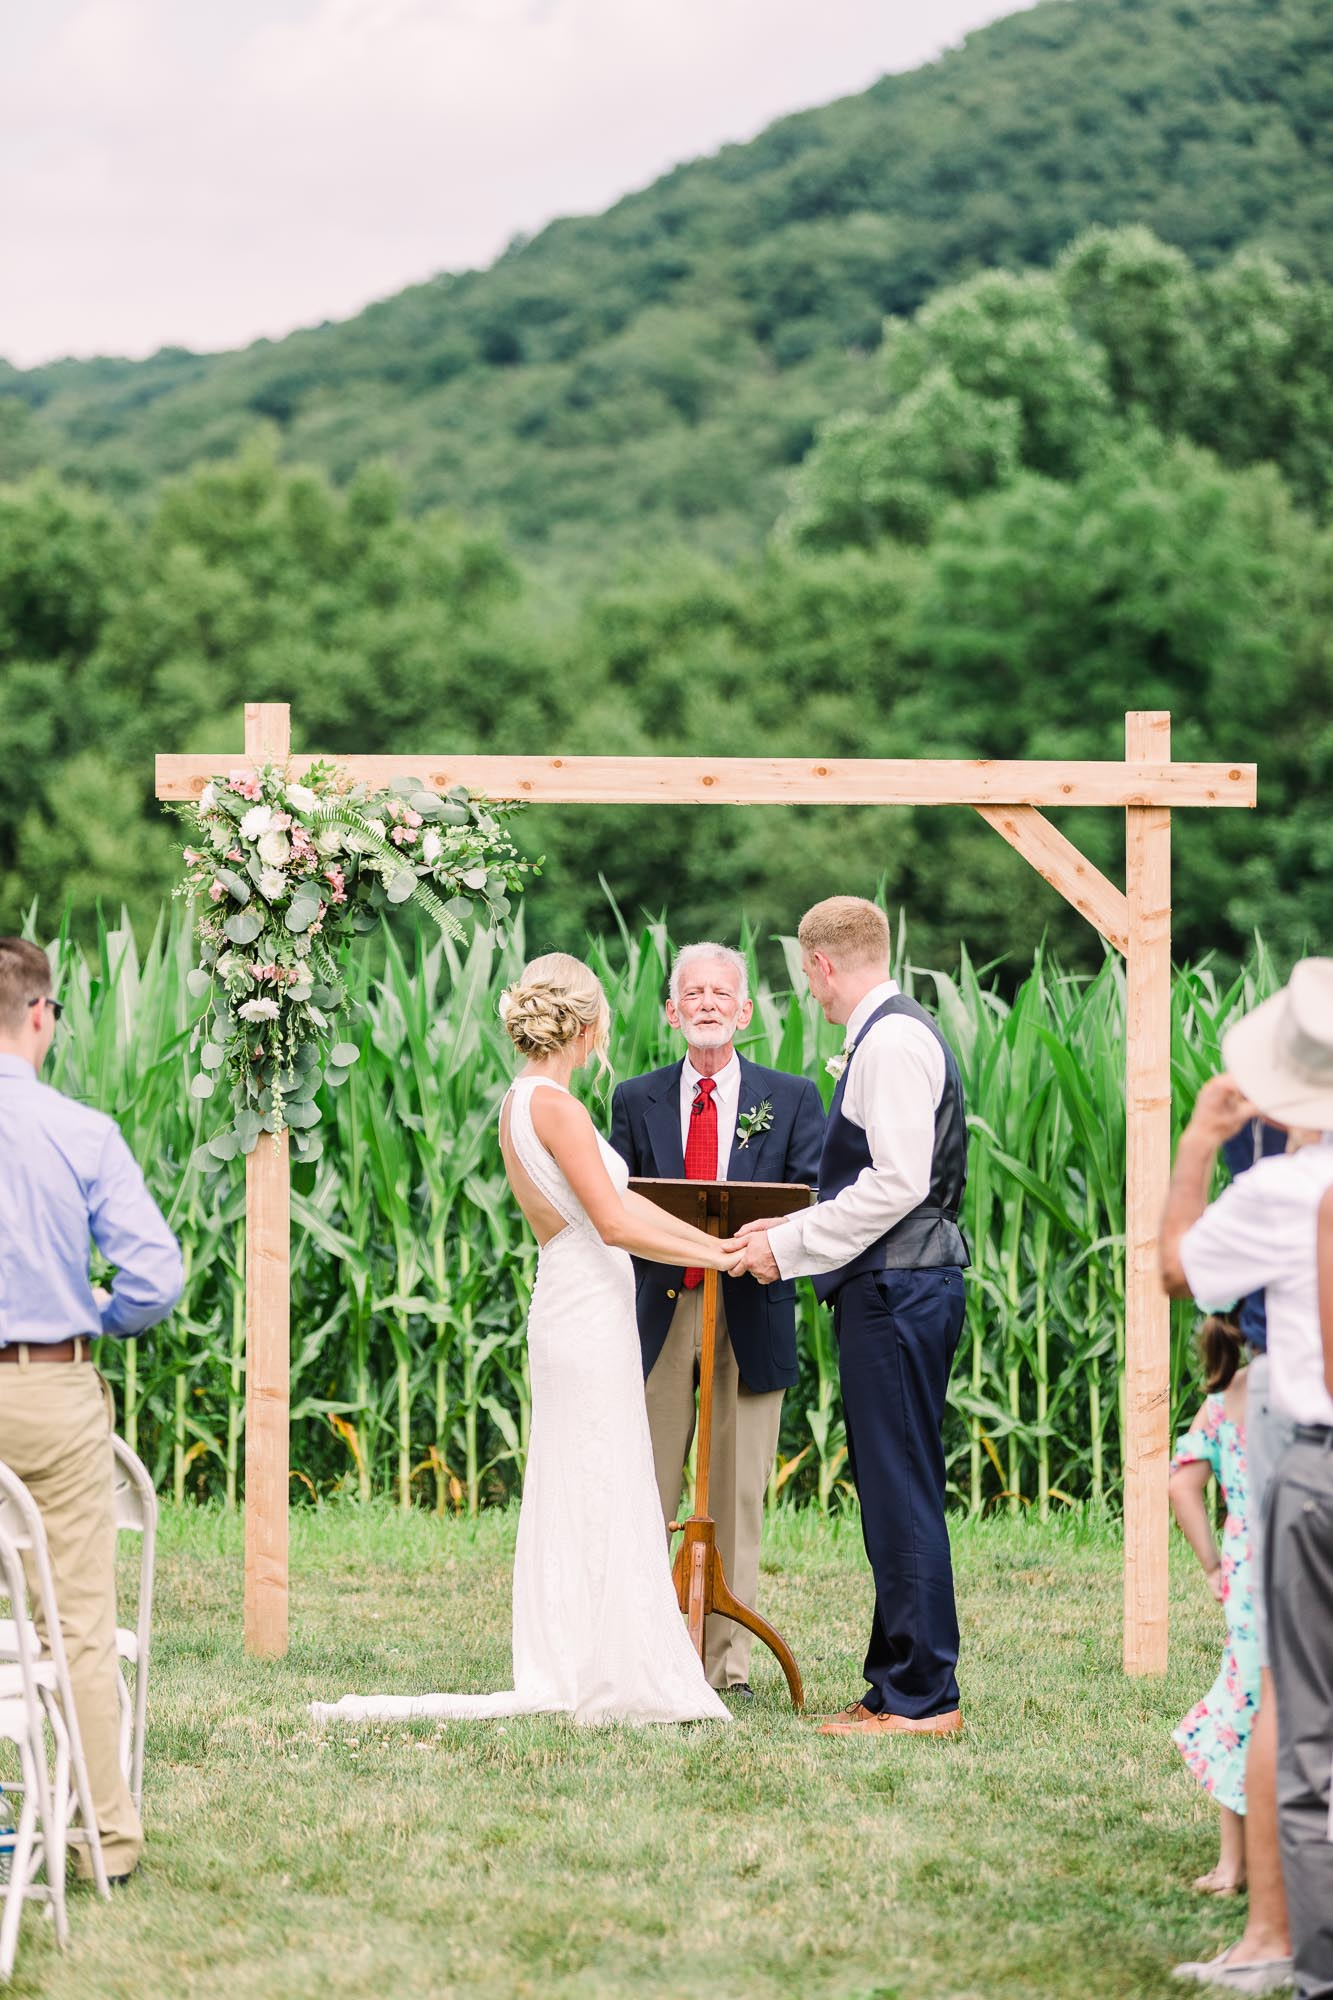 Muncy-backyard-farm-wedding-5033.jpg